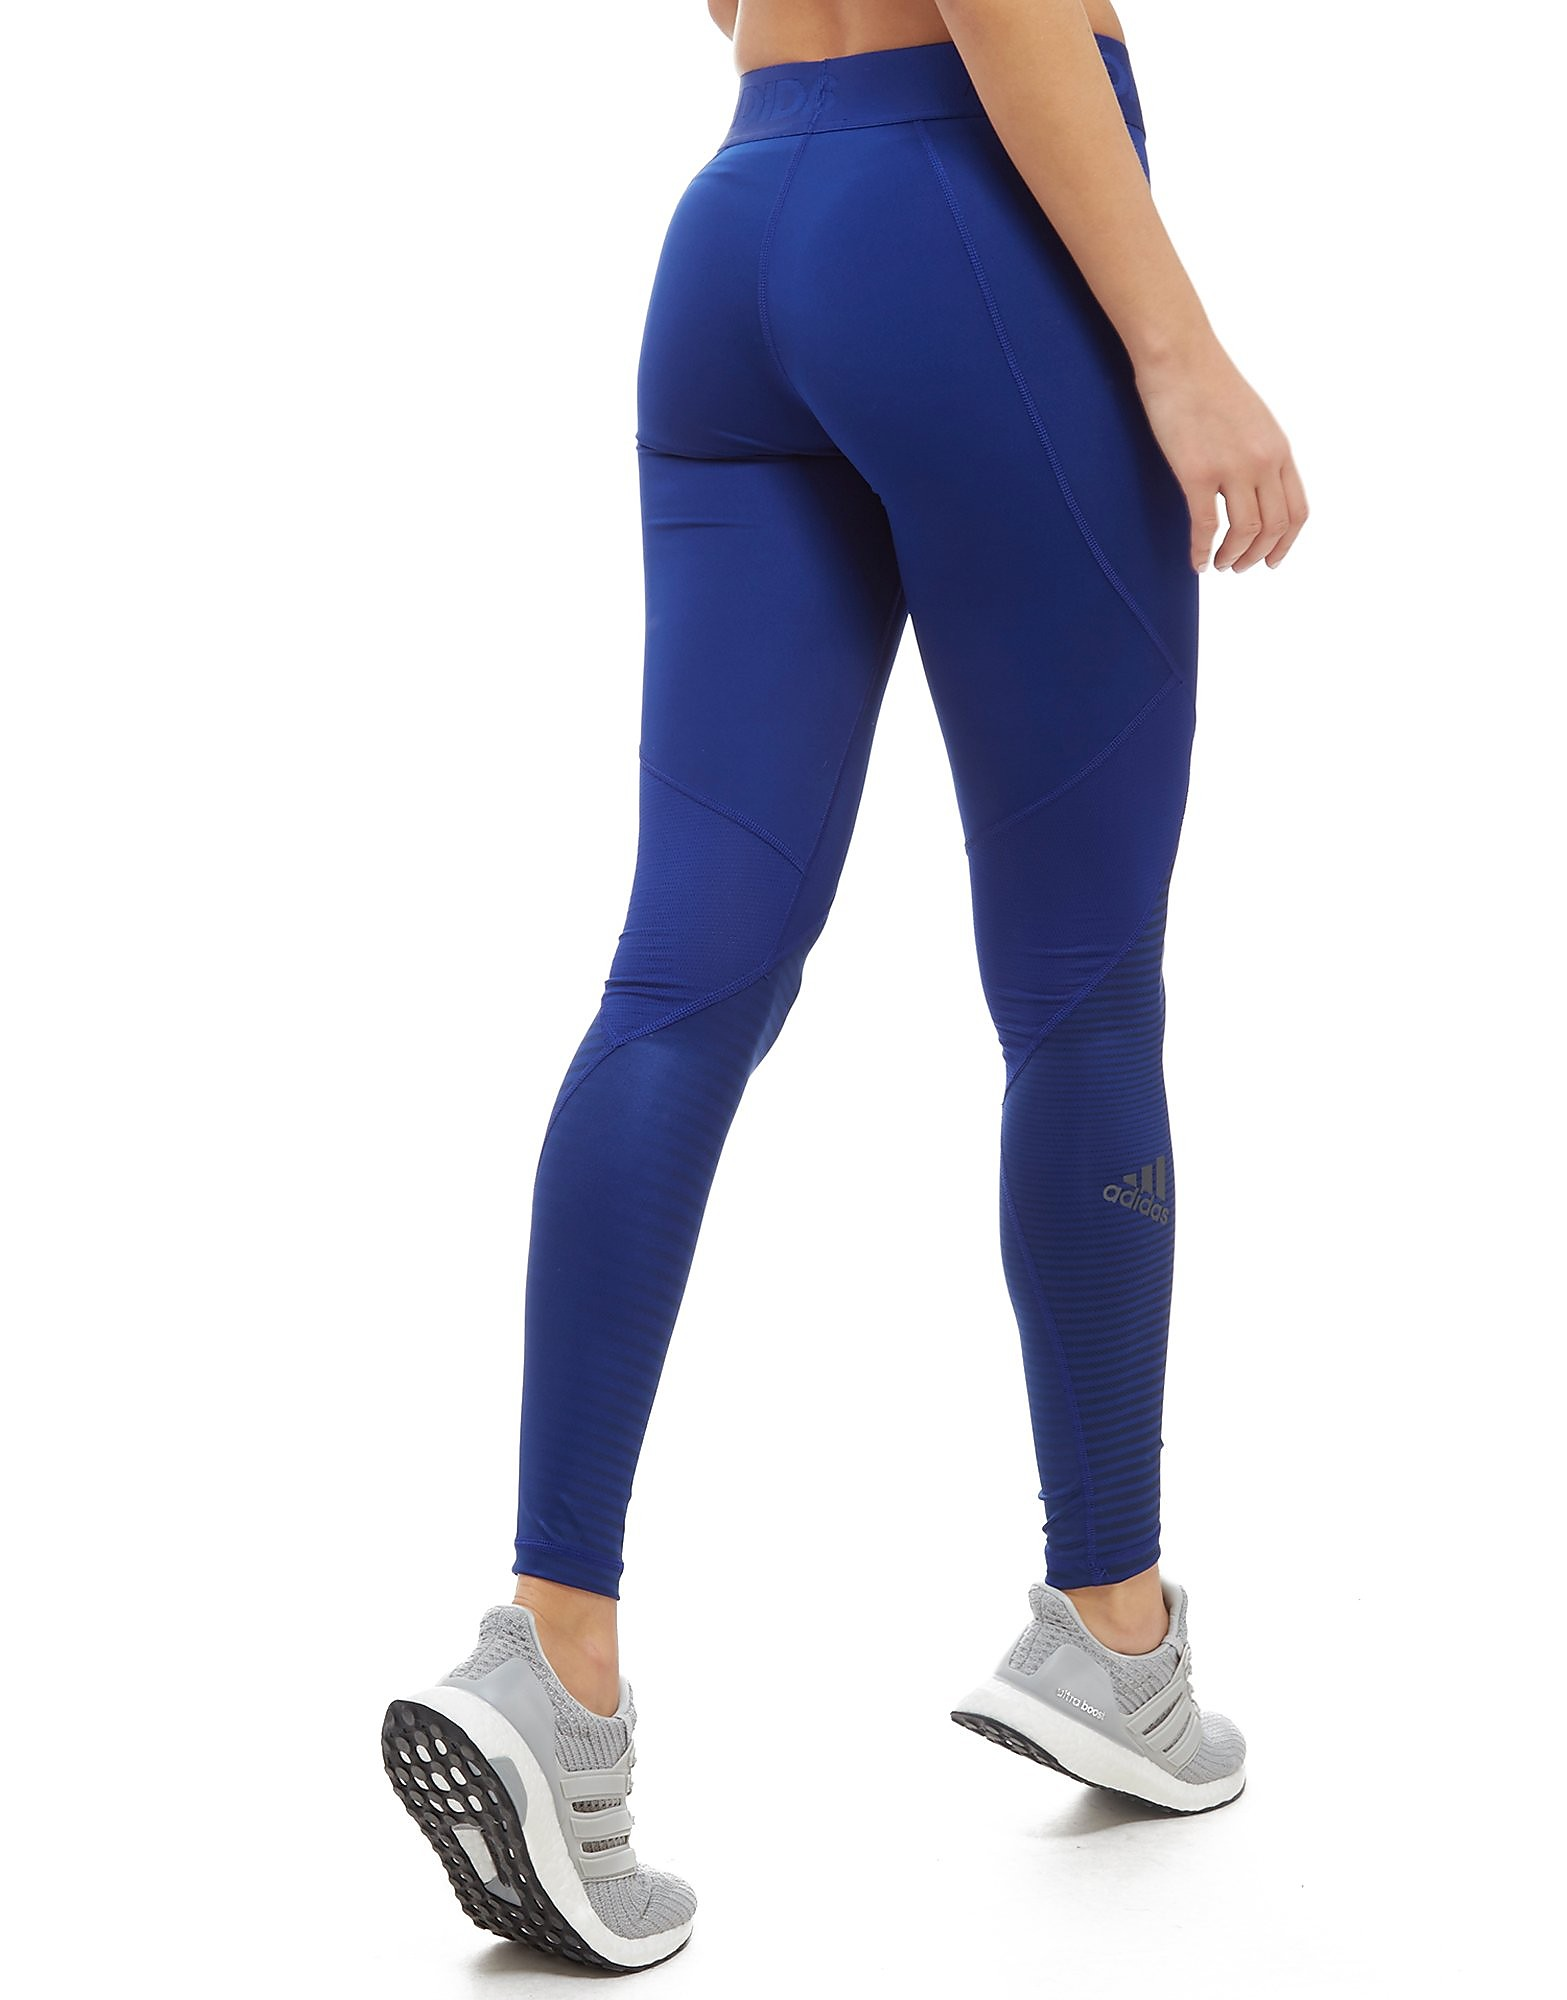 adidas Alpha Skin Tights